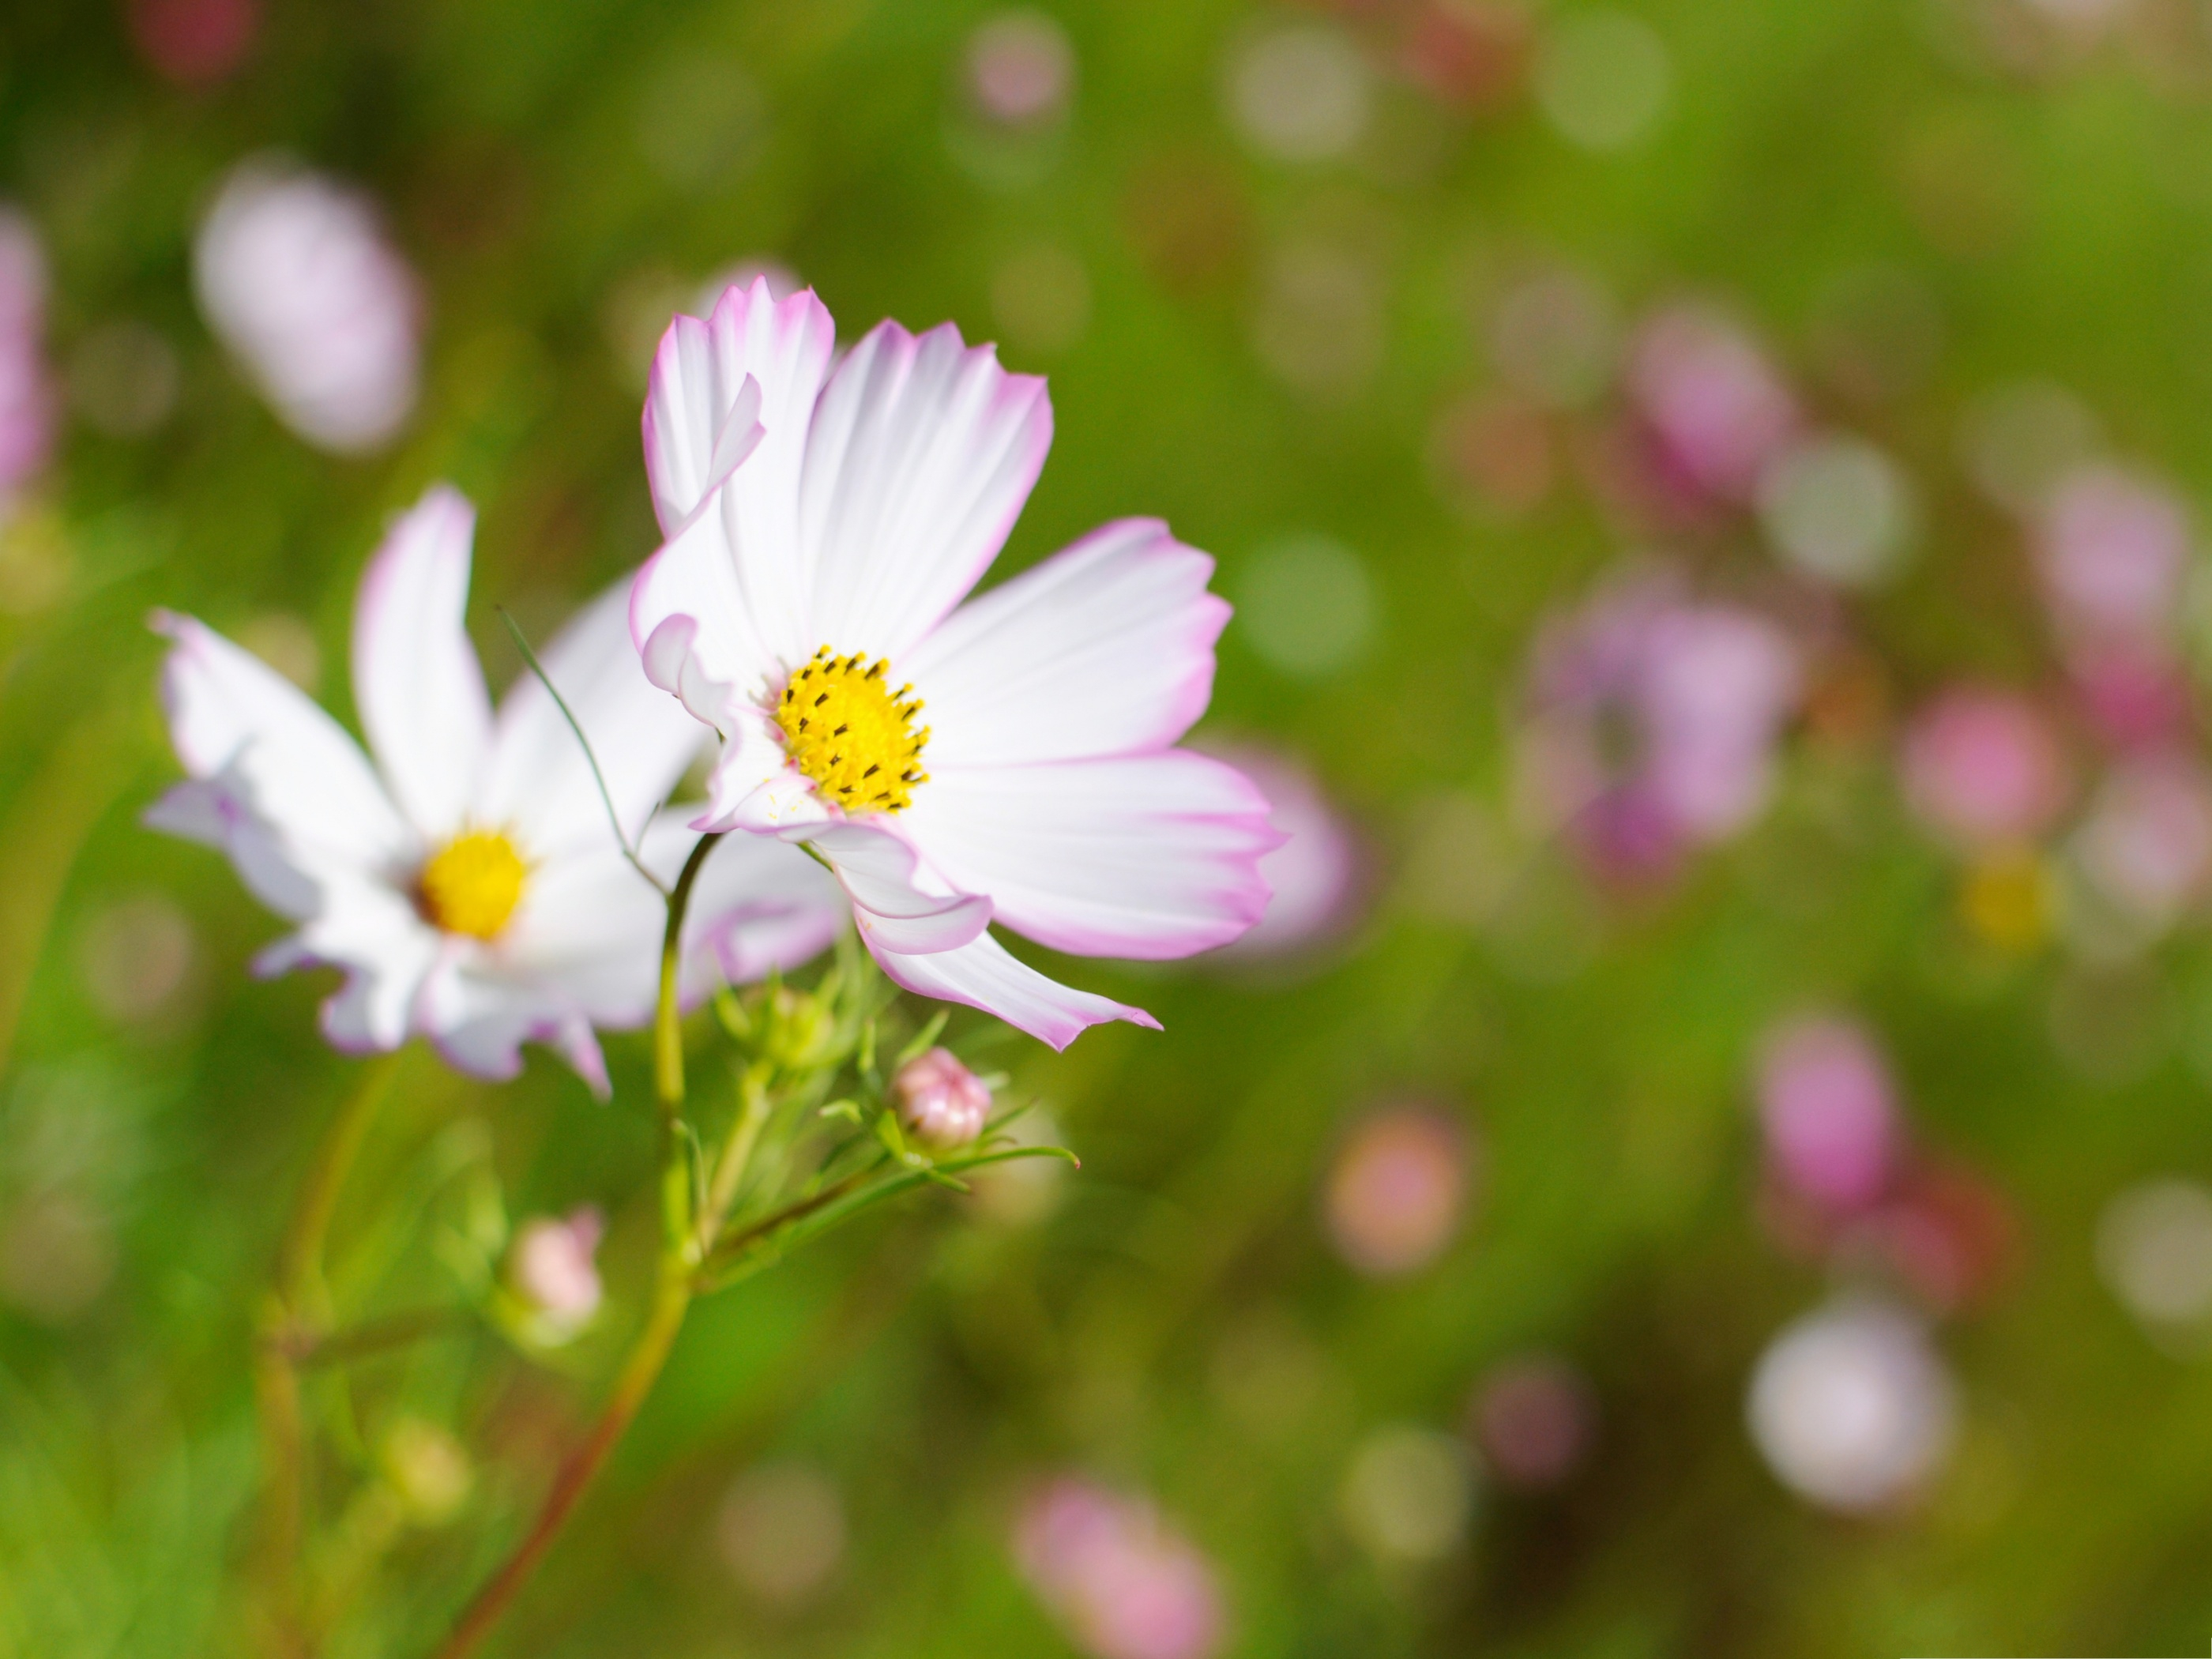 White Cosmos Flower Little Flowers in Bloom Incredible Scene 2800X2100 free